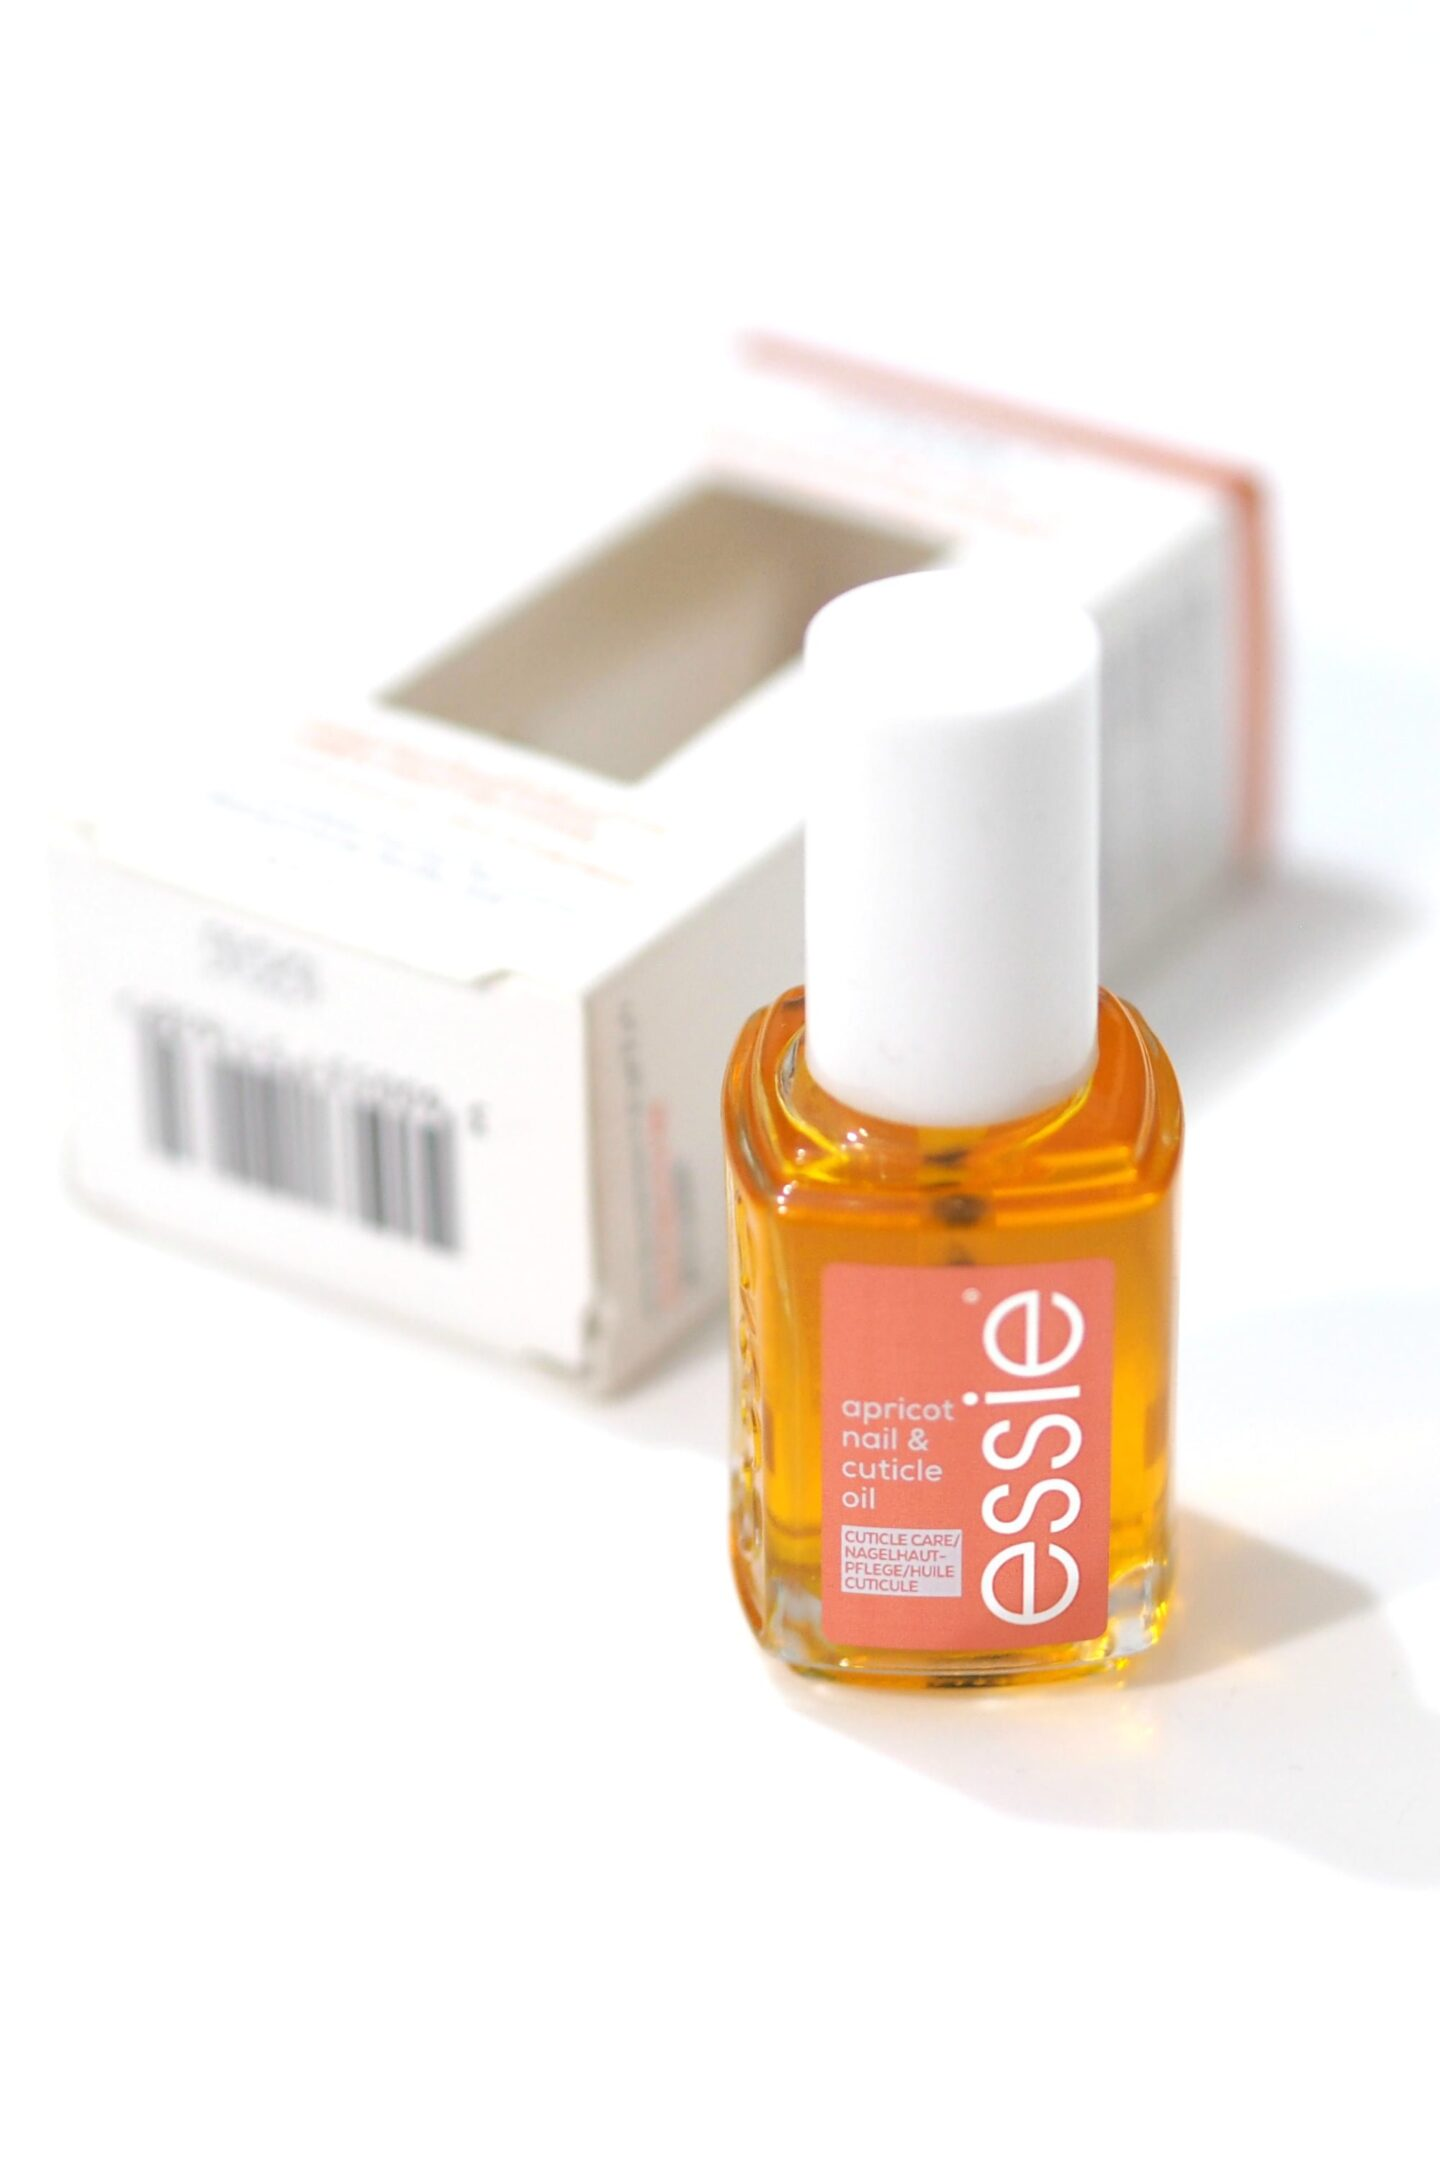 Essie Apricot Nail & Cuticle Oil